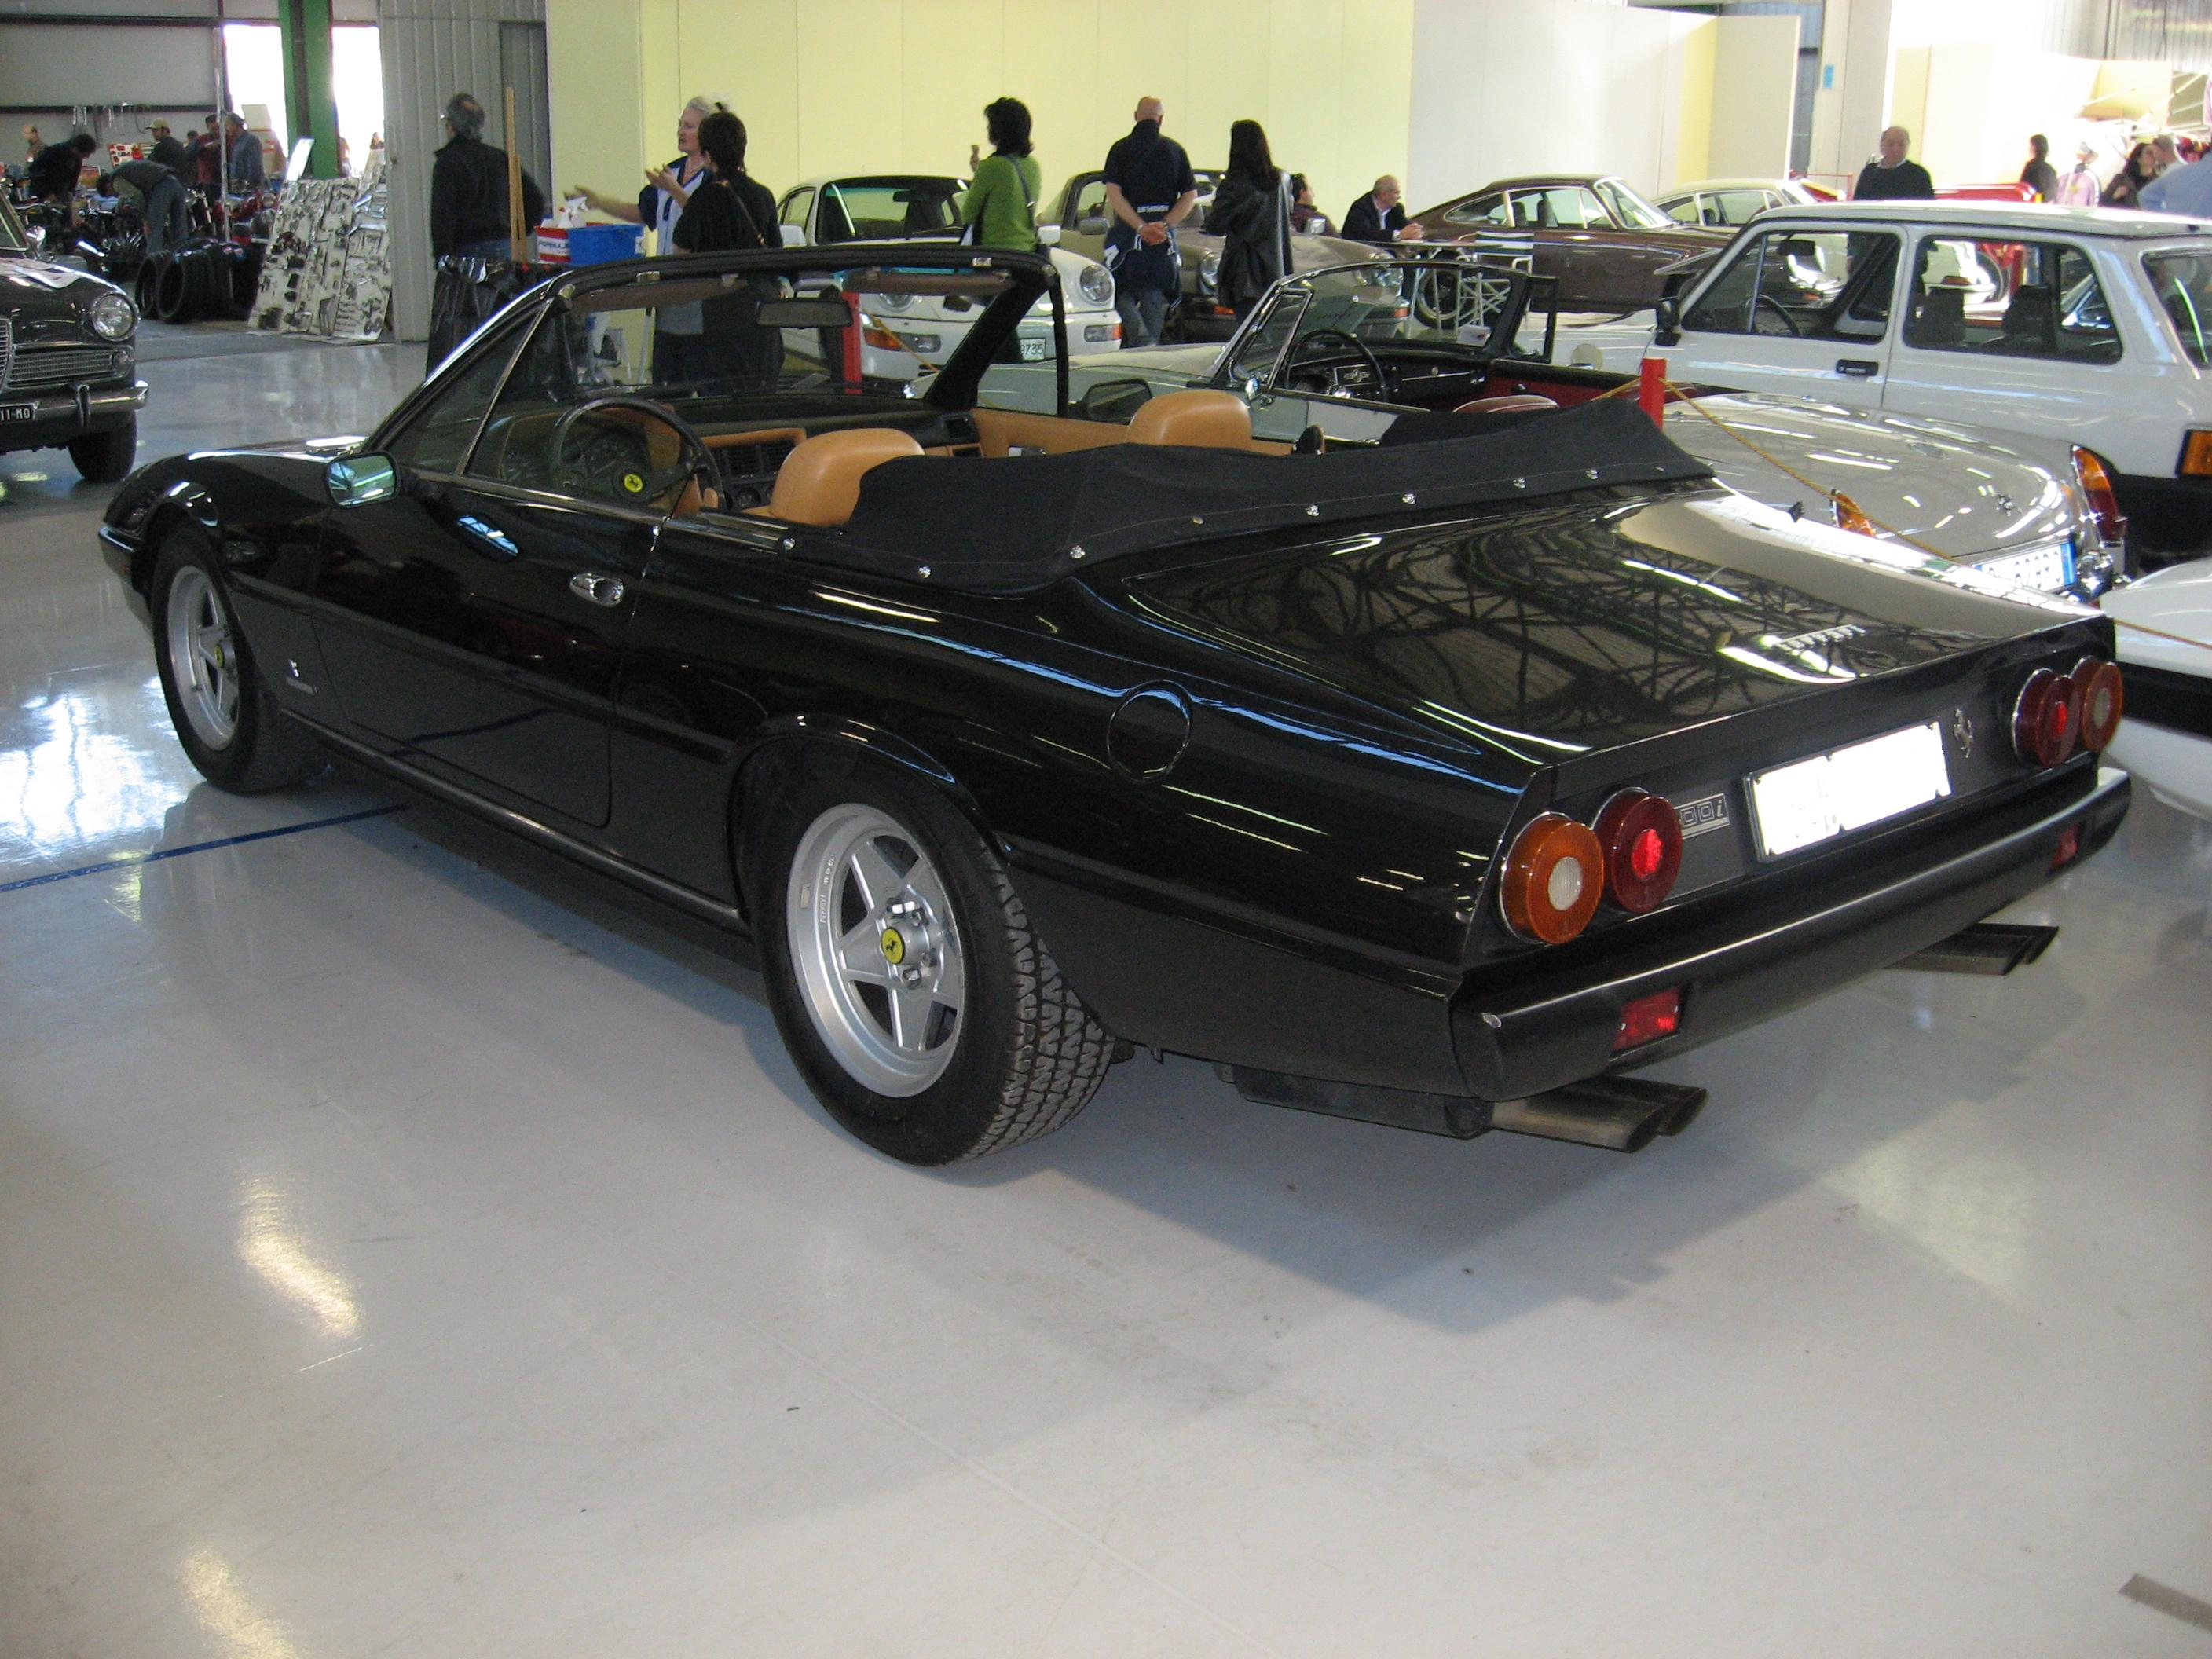 http://upload.wikimedia.org/wikipedia/commons/a/ac/Ferrari_400_convertible.jpg